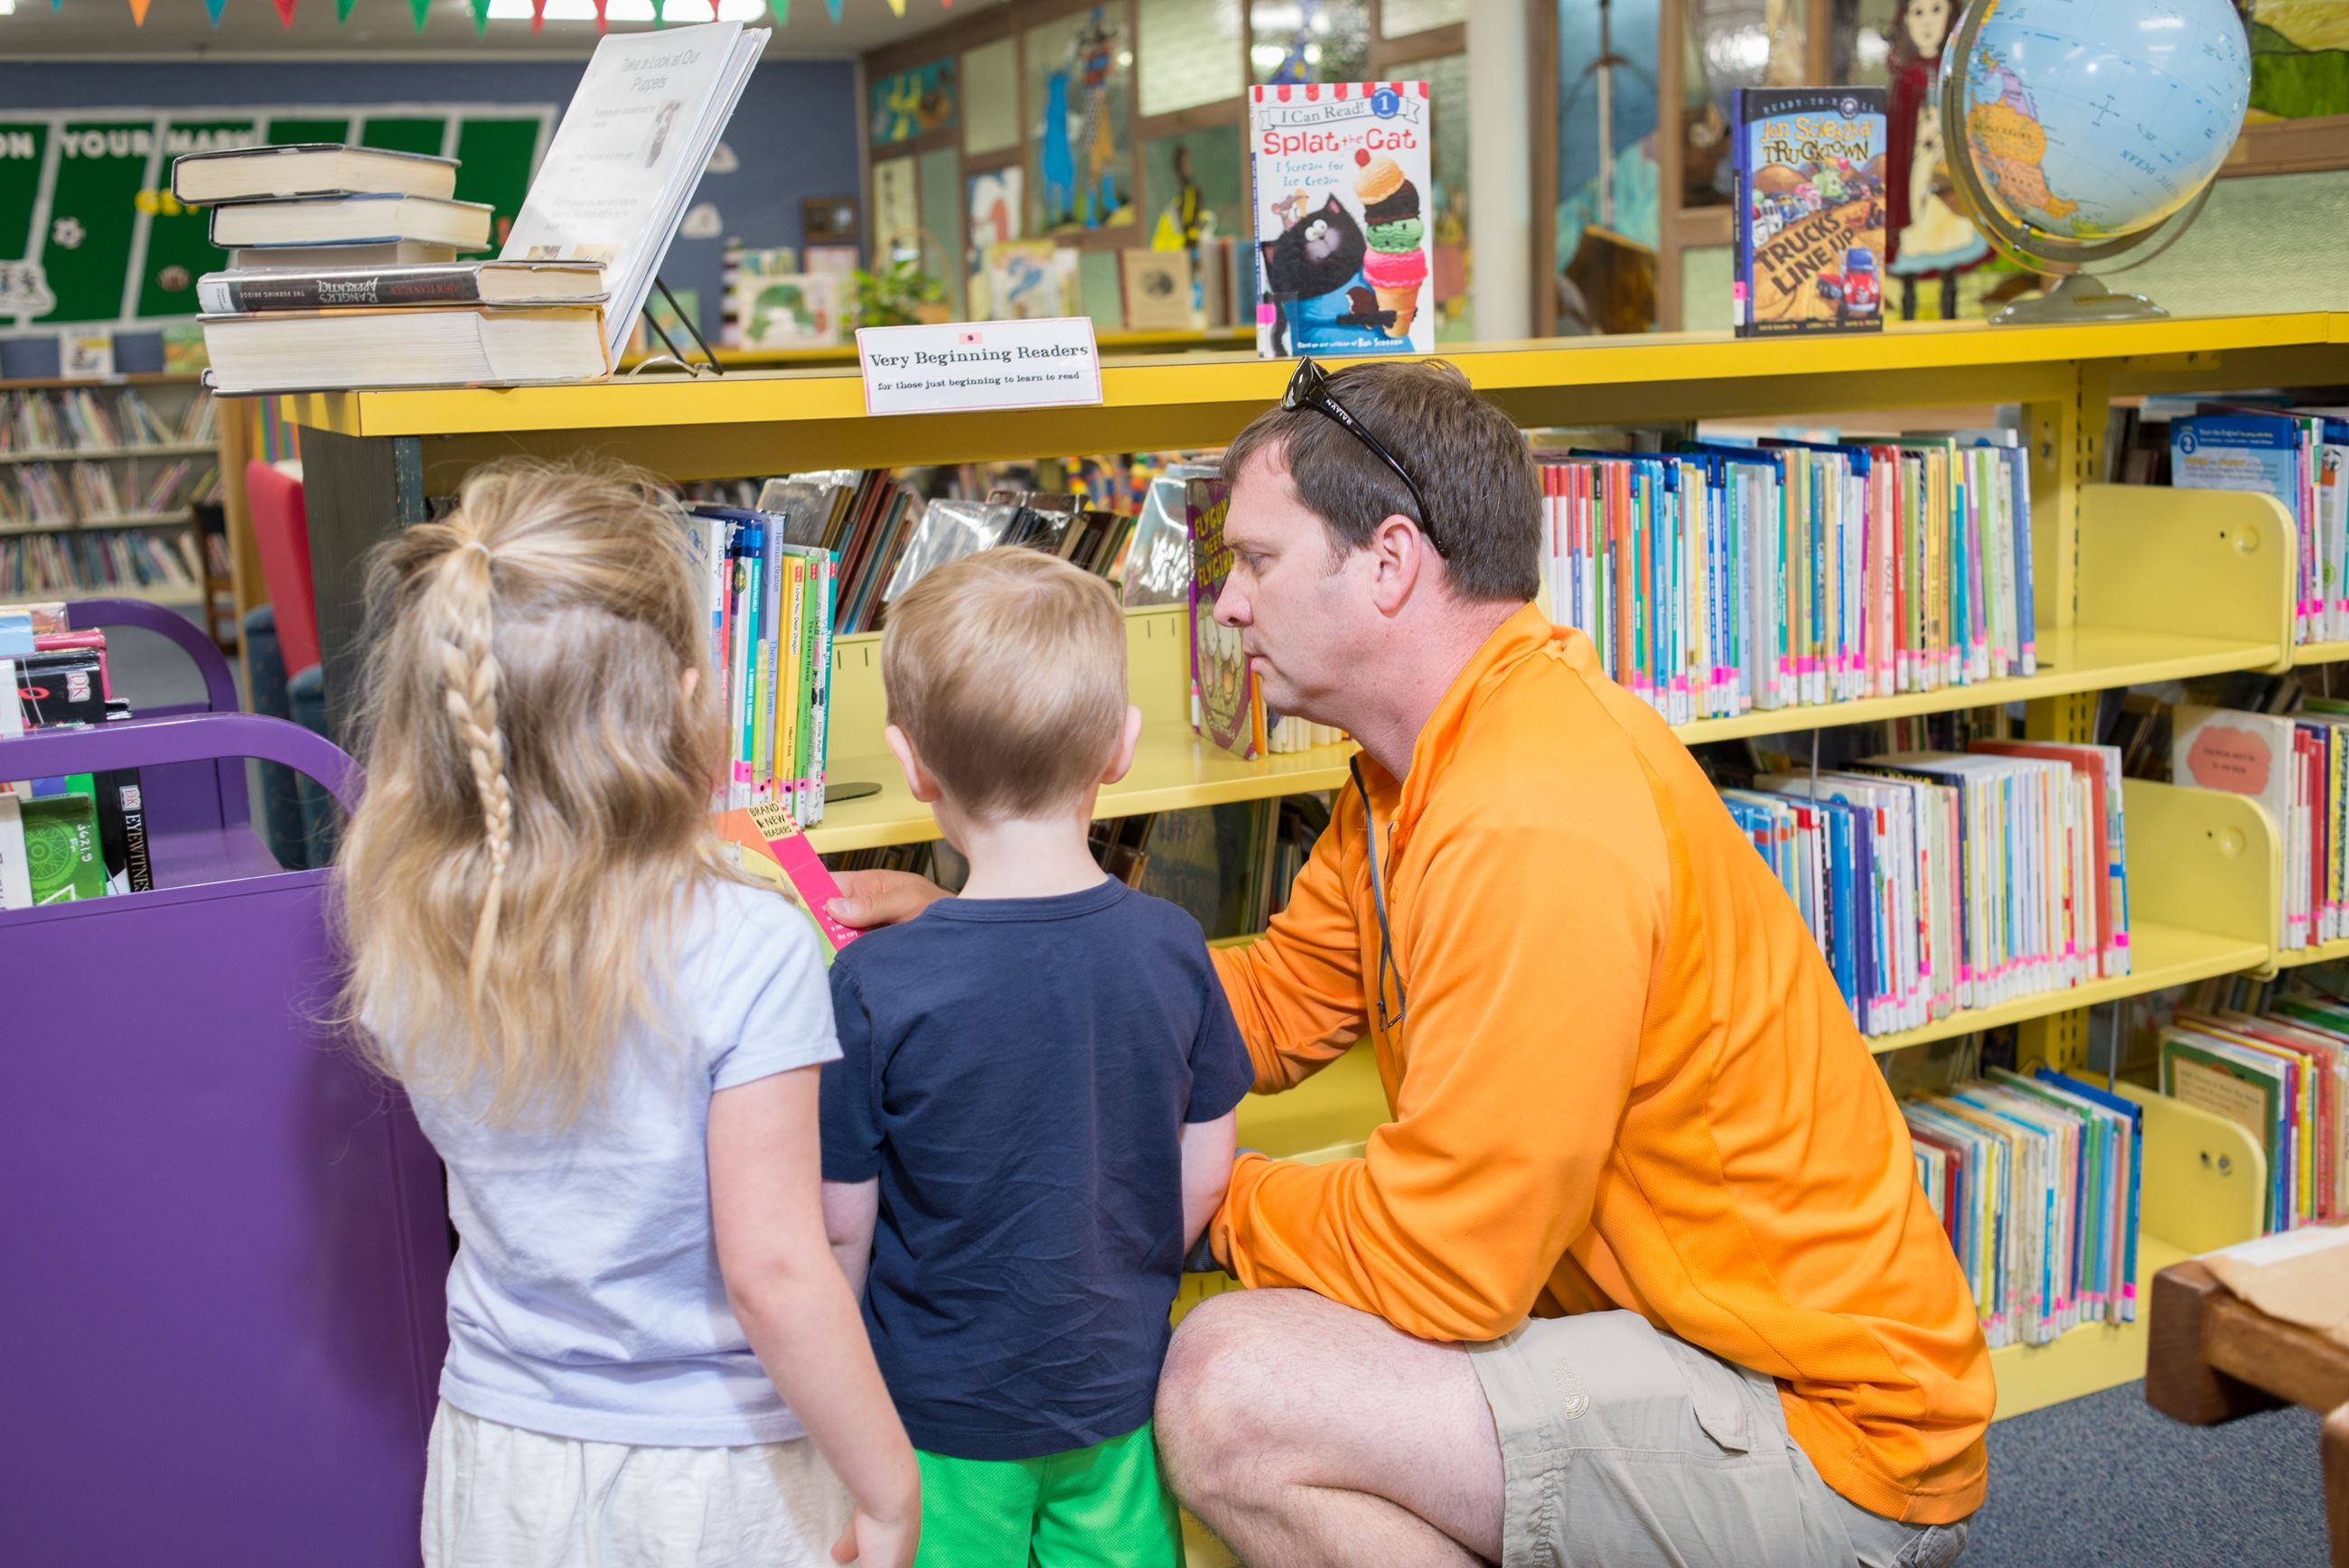 Image of father and children in front of book shelves